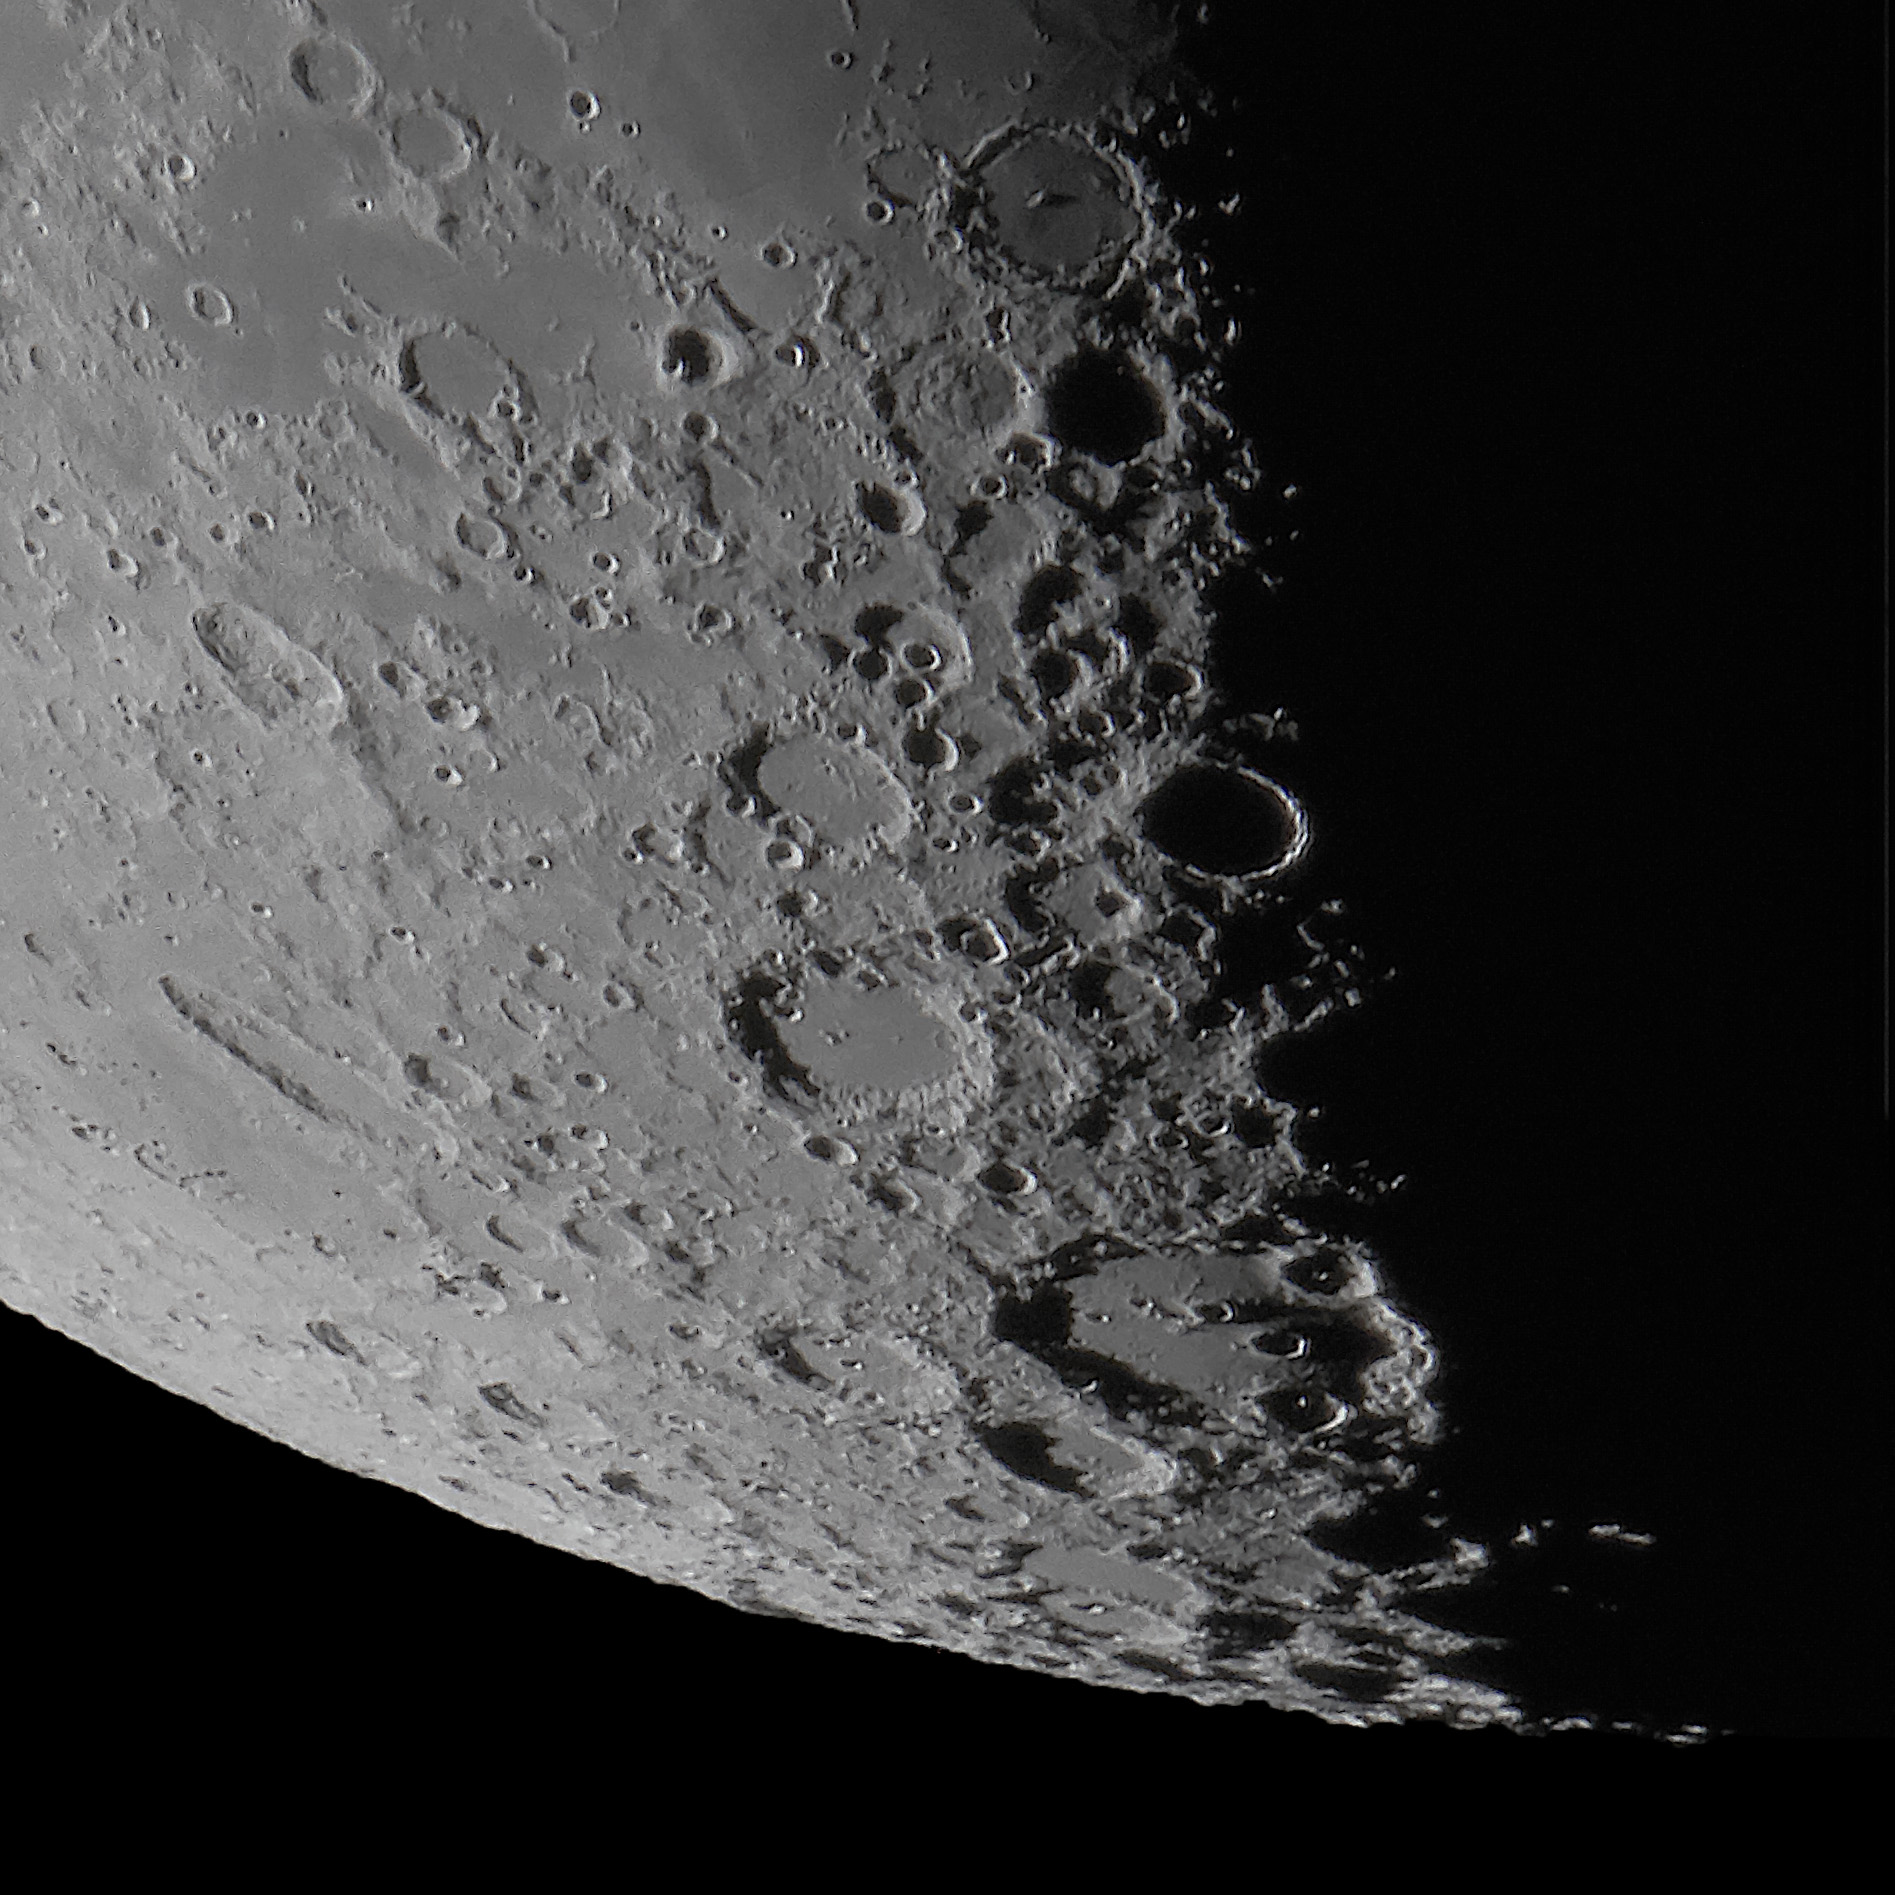 Clavius and the Southern Highlands of the Moon